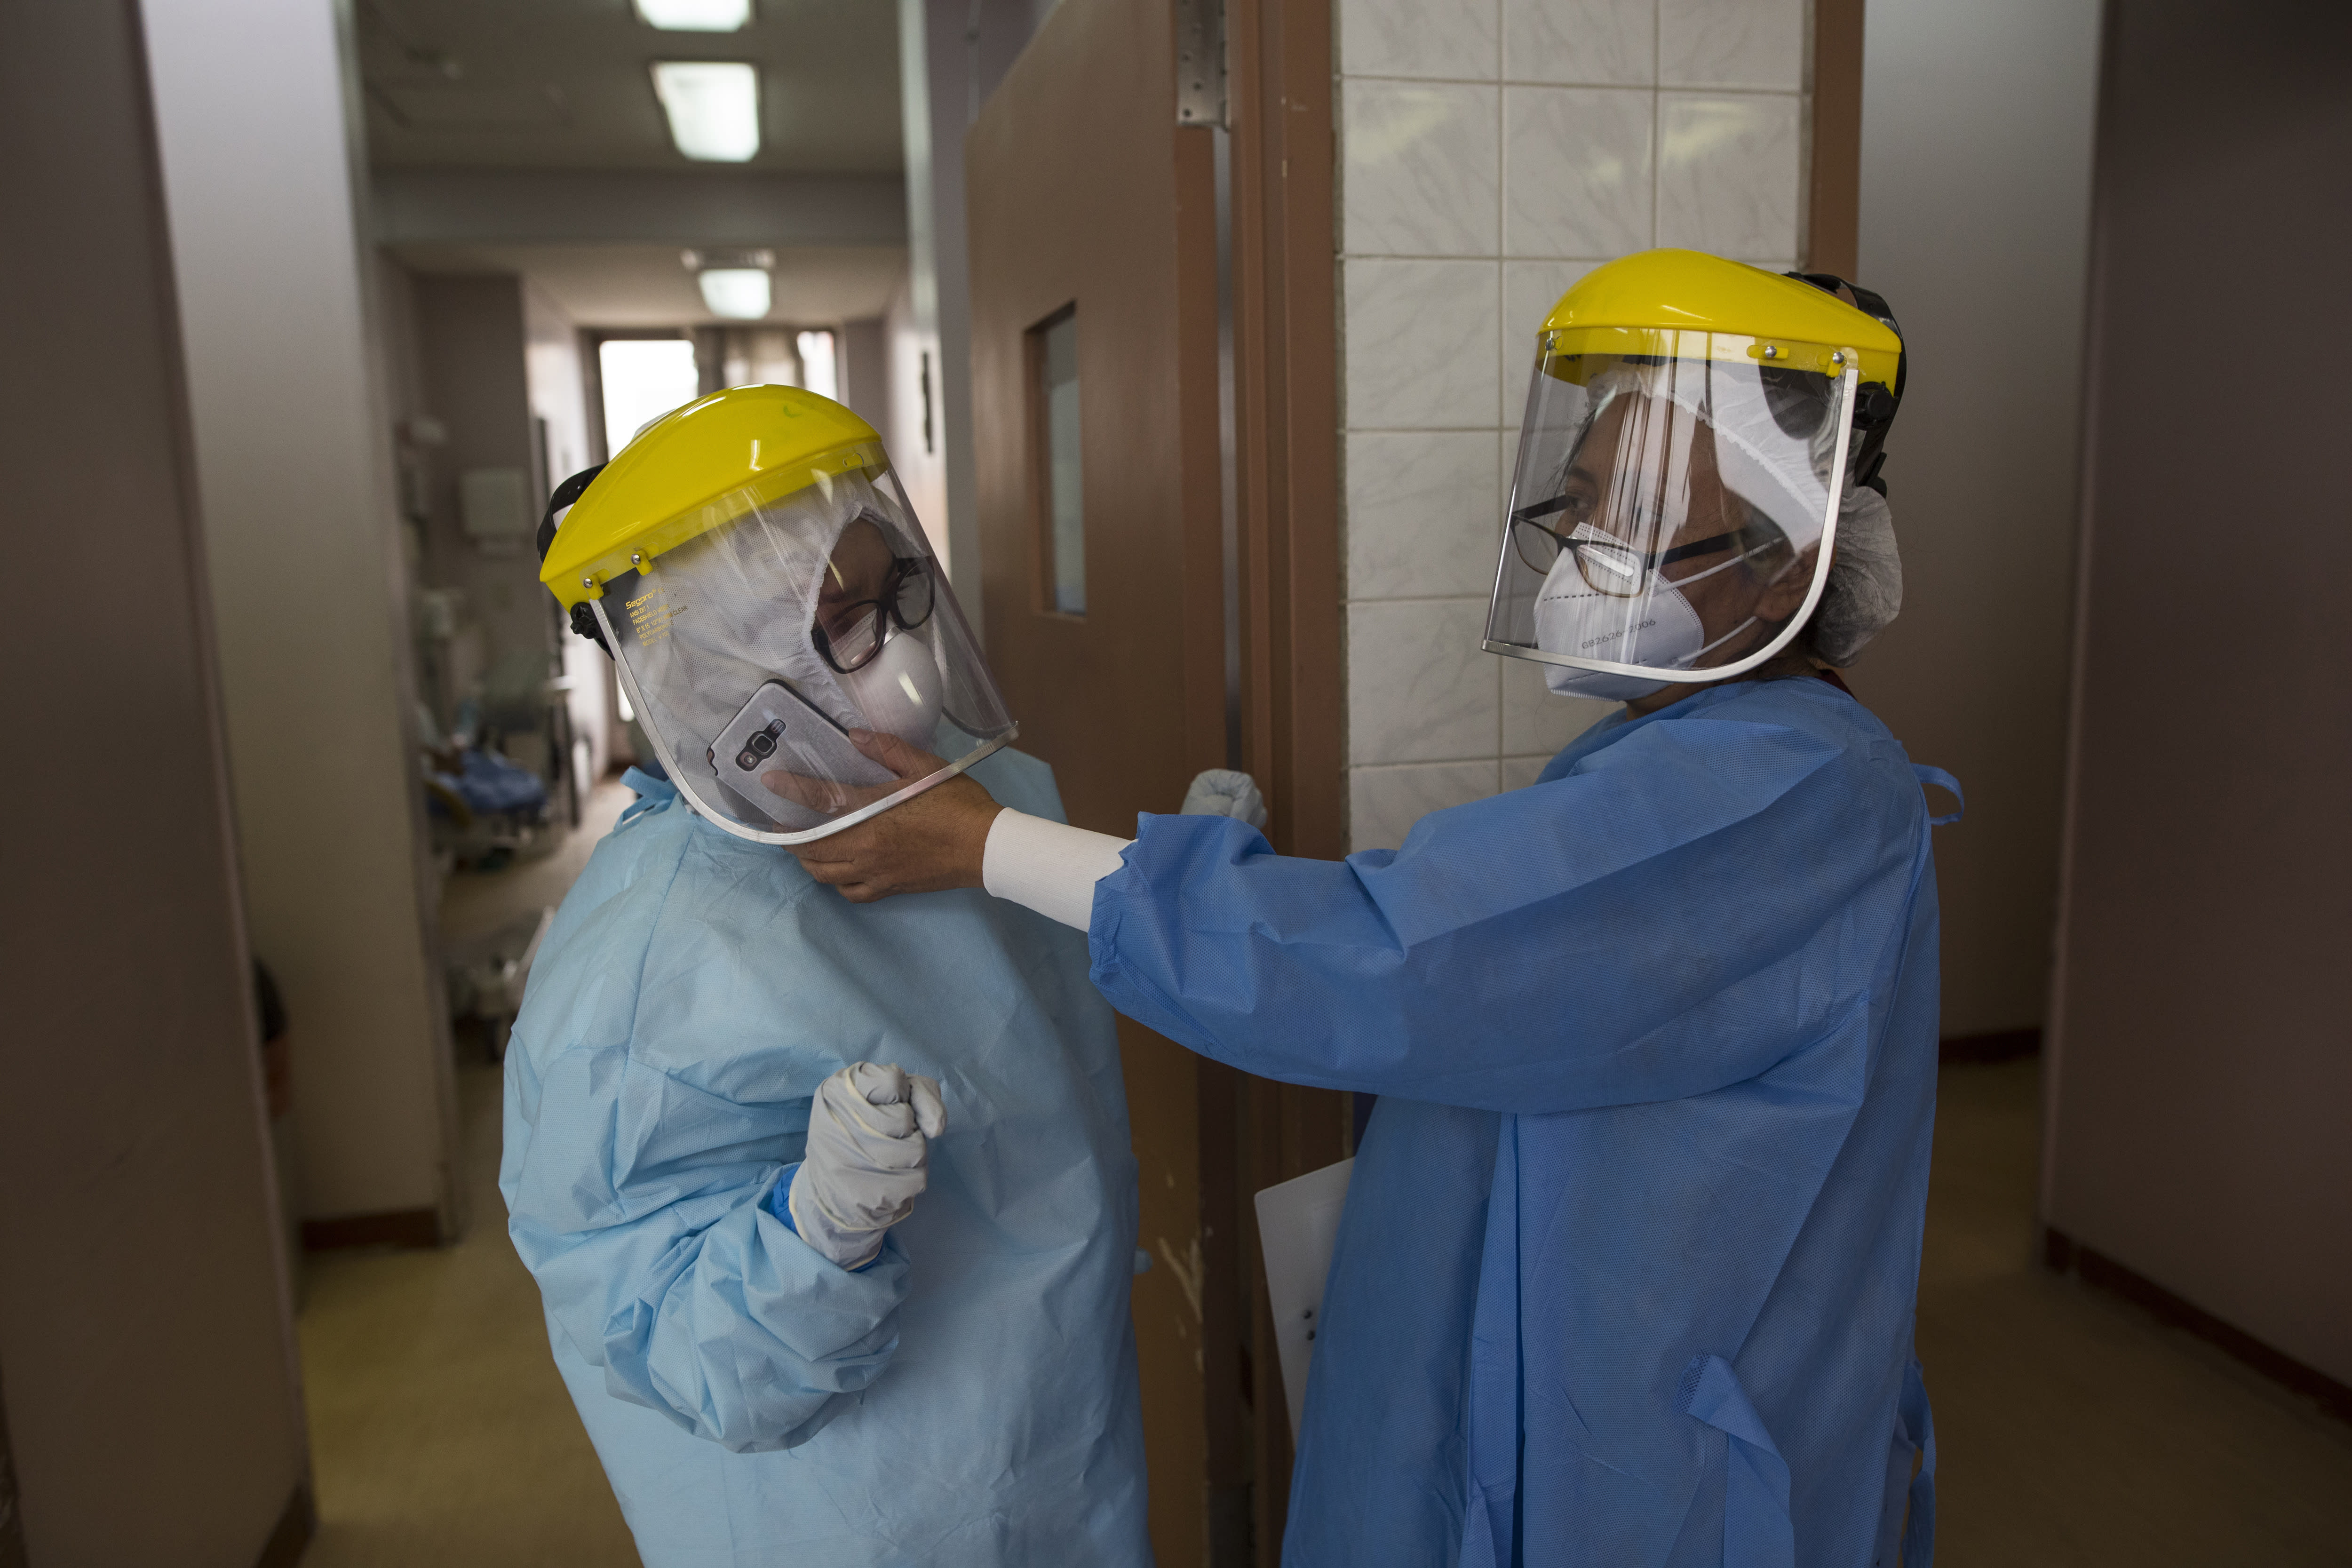 A healthcare worker helps a fellow obstetrician receive a phone call making her rounds in a special ward for mothers with COVID-19, at the National Perinatal and Maternal Institute, in Lima, Peru, Thursday, July 9, 2020. Despite wearing personal protective equipment and taking other measures to avoid infection, 400 of the 2000 Institute's workers have also been infected, said its director, Enrique Guevara. (AP Photo/Rodrigo Abd)